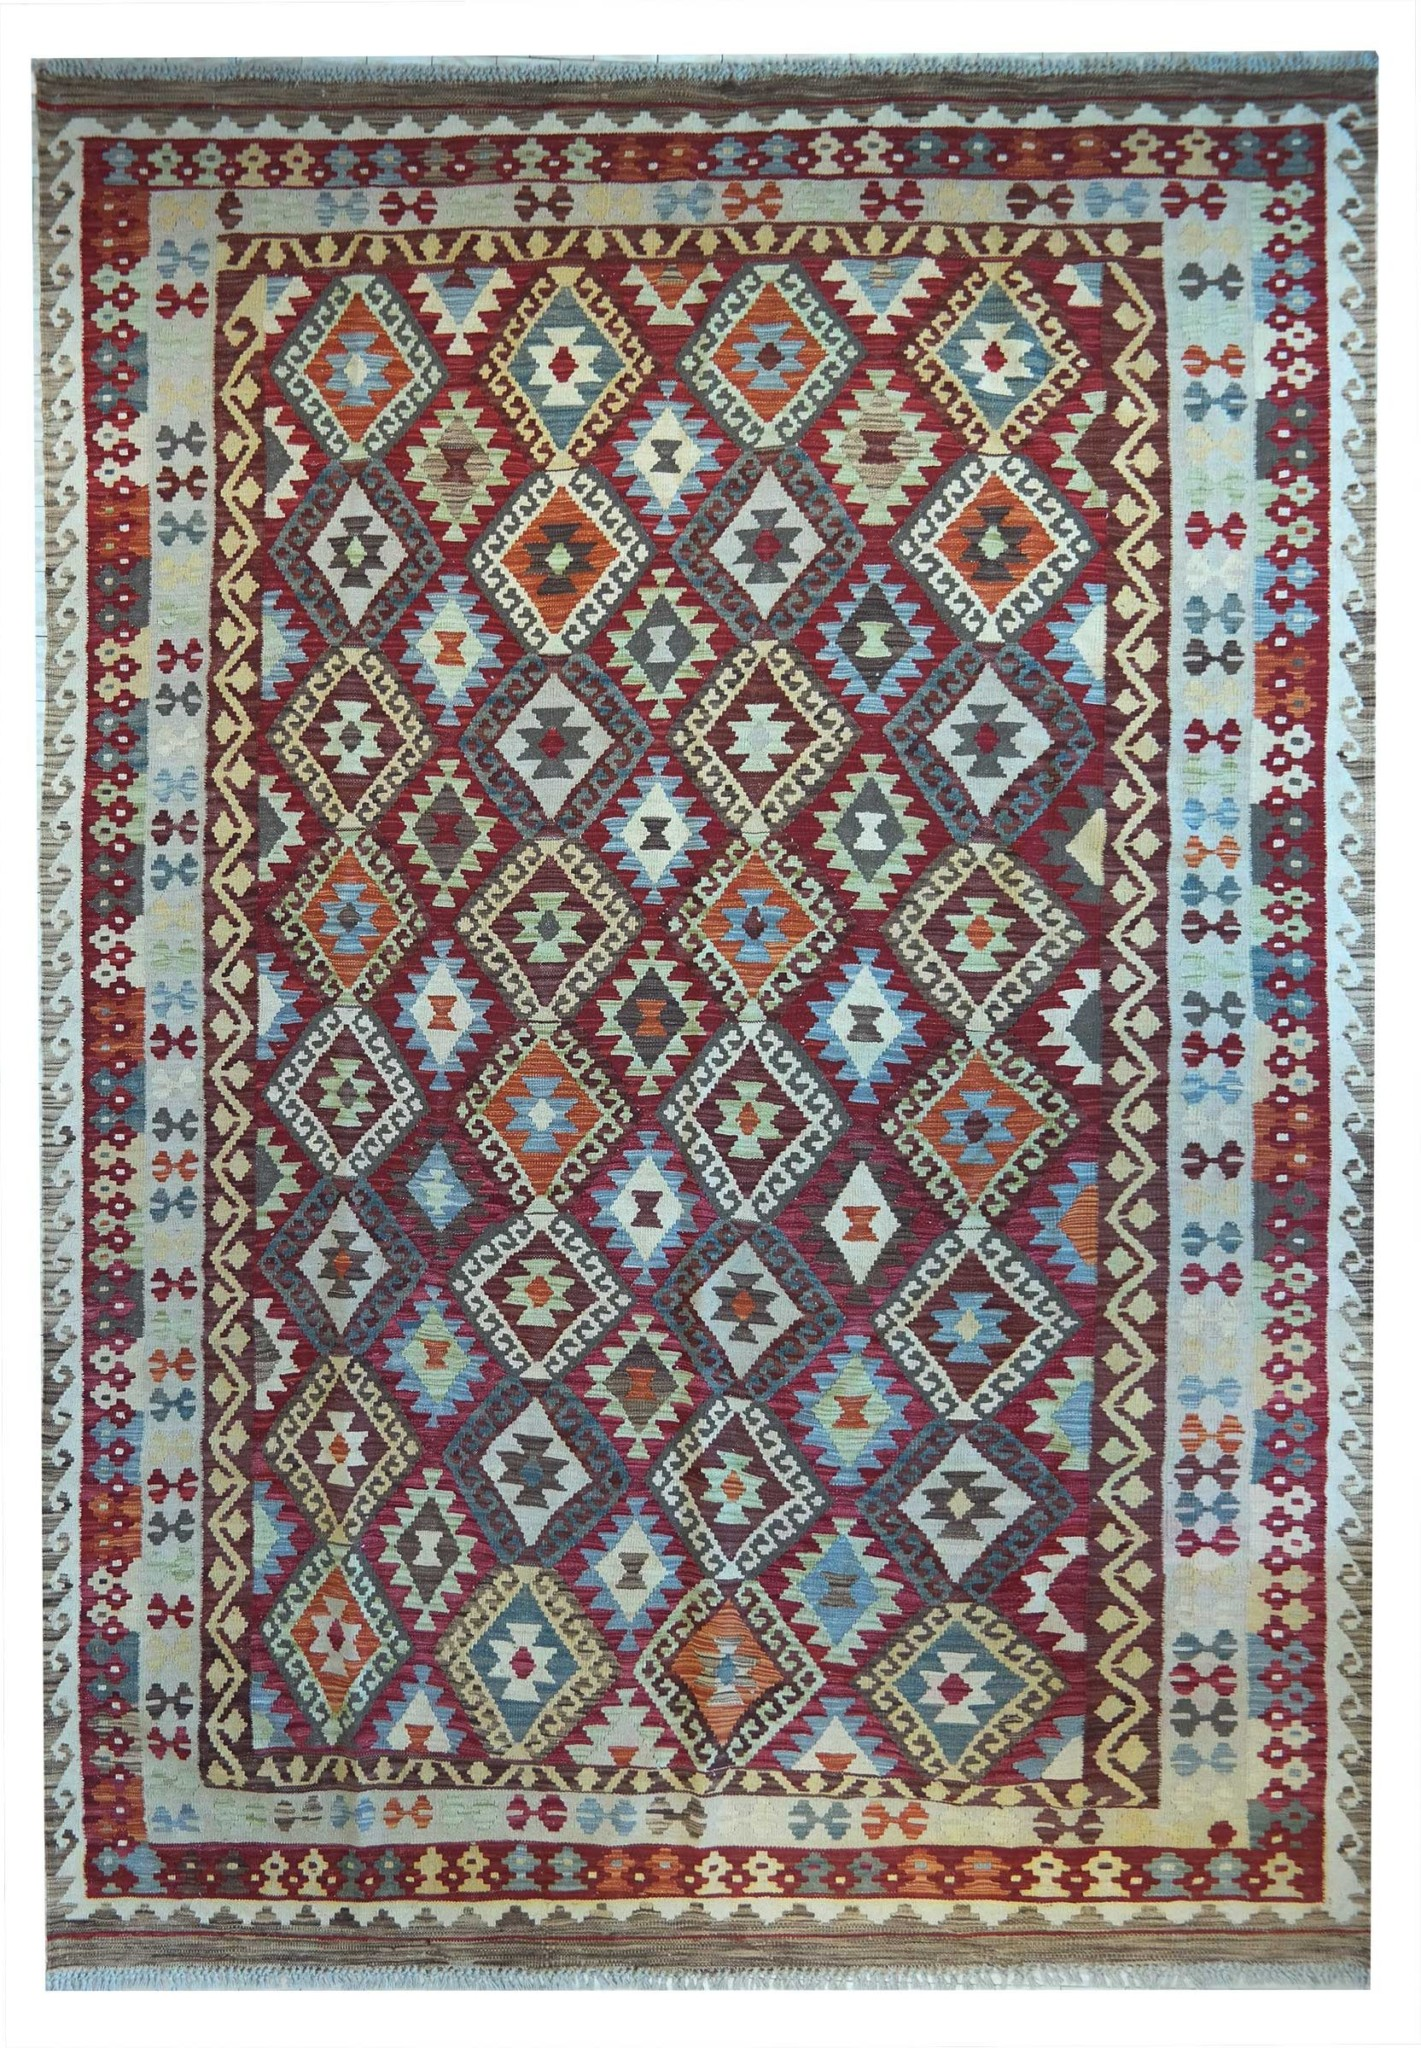 SAM_1532 meimaneh natural colors knotted by hand, 294 x 204, offer €.1350,00